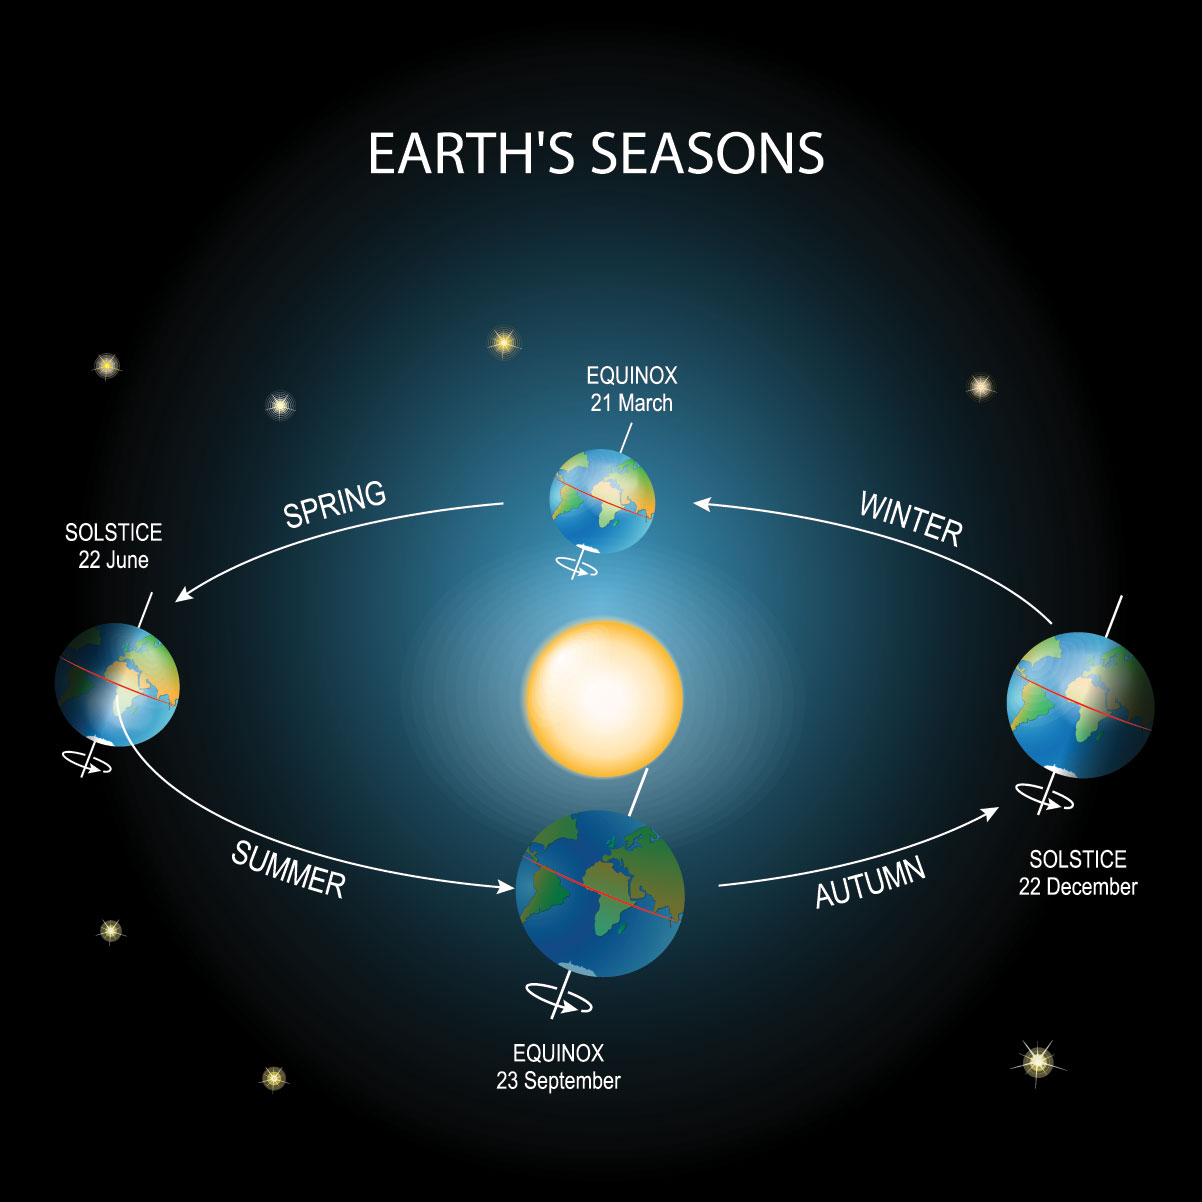 spring equinox diagram